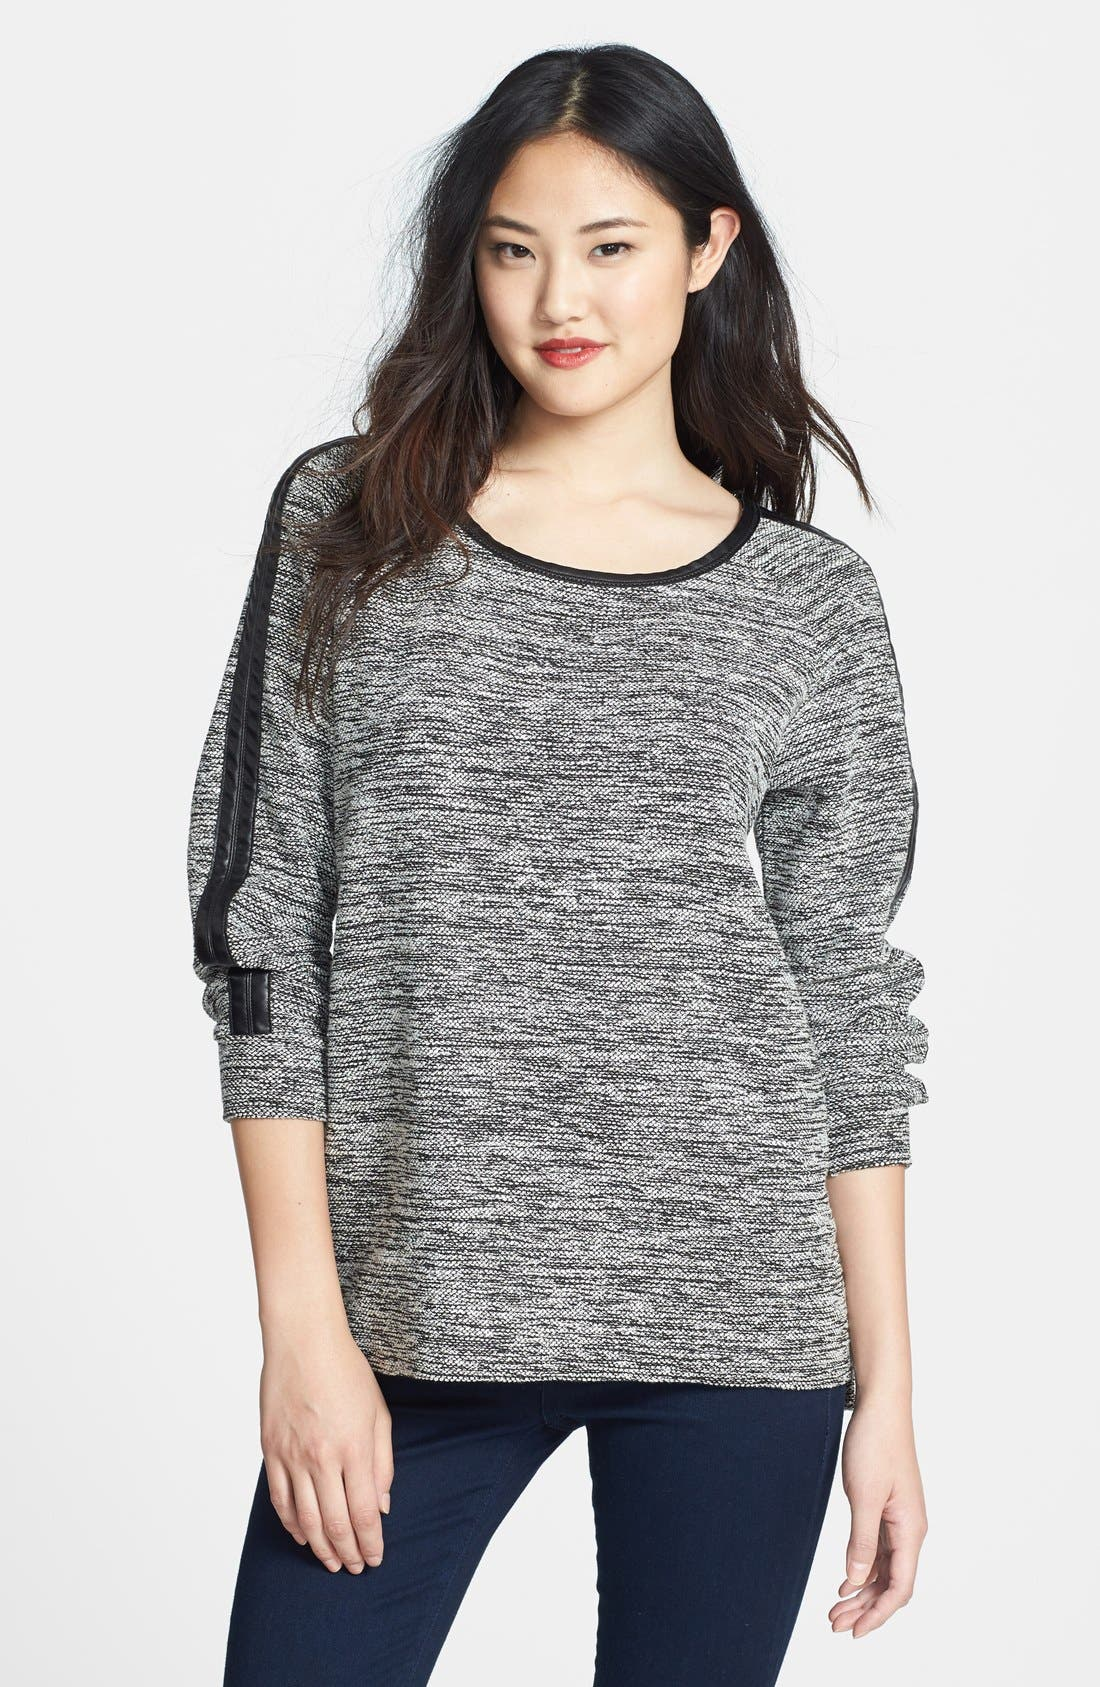 Main Image - Two by Vince Camuto Faux Leather Trim Sweatshirt